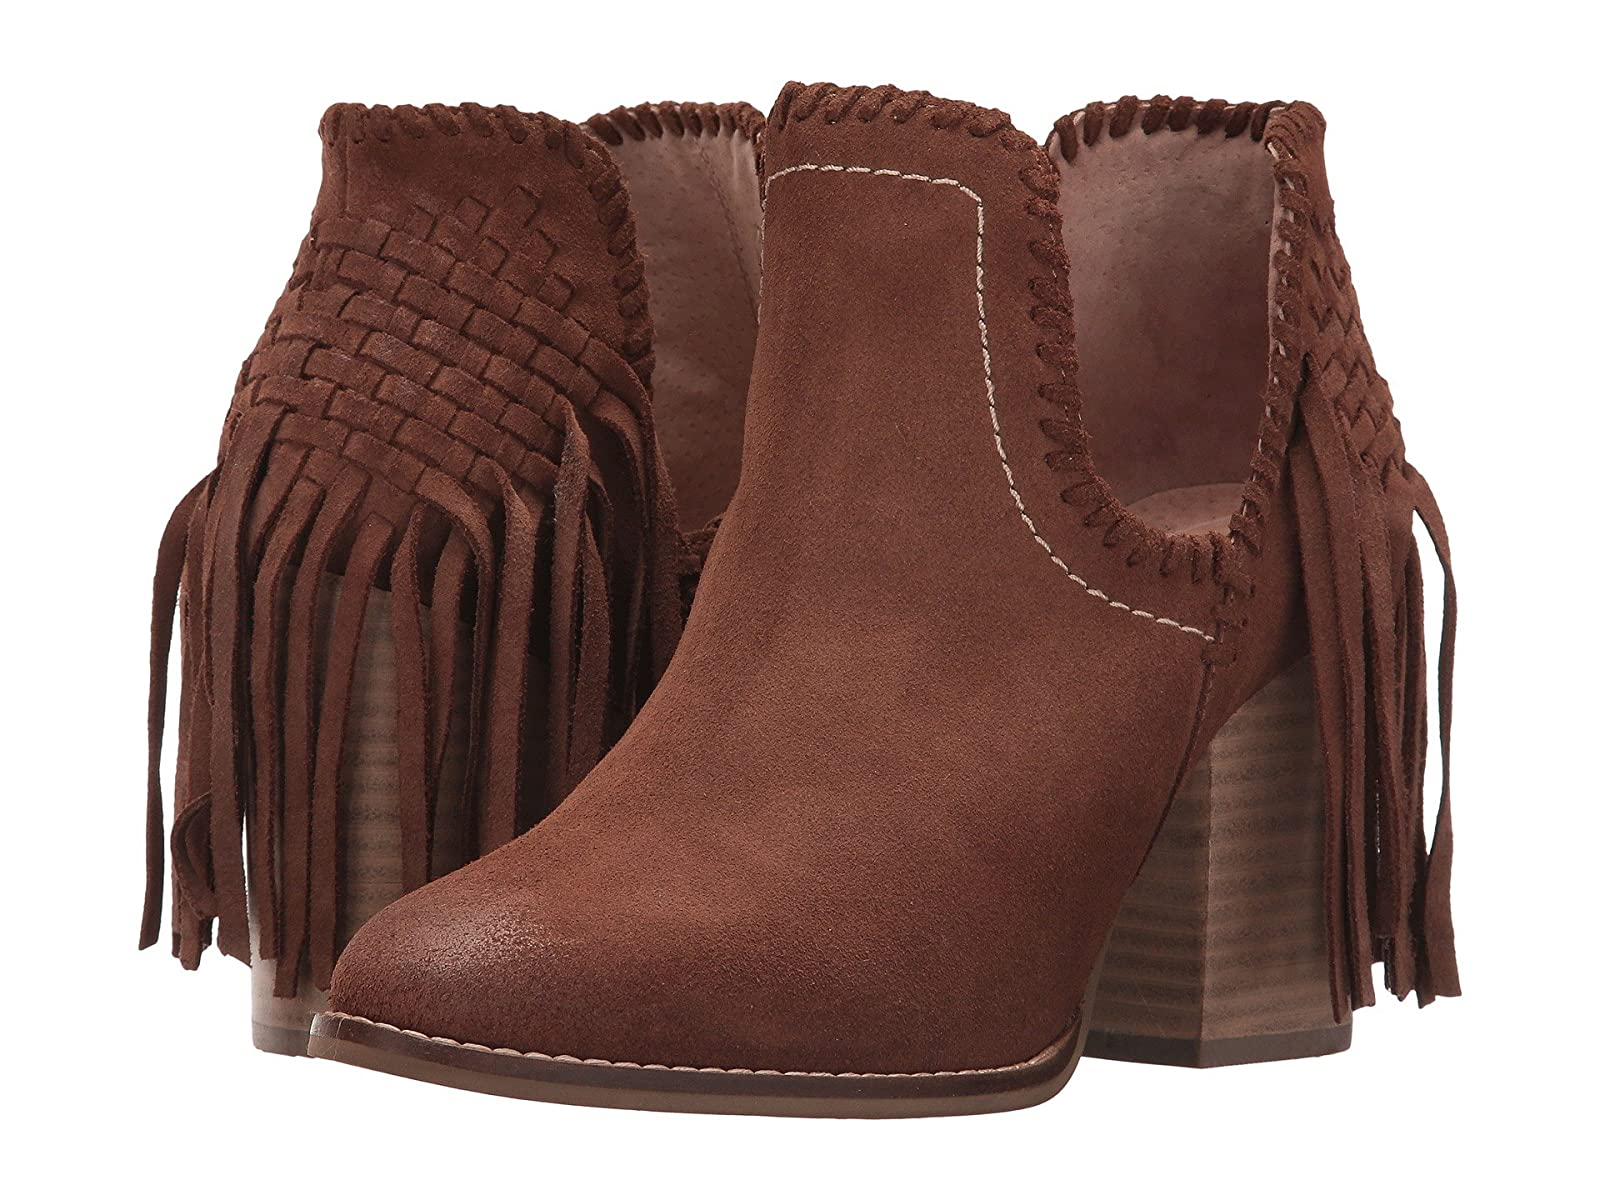 Ariat Unbridled LilyCheap and distinctive eye-catching shoes